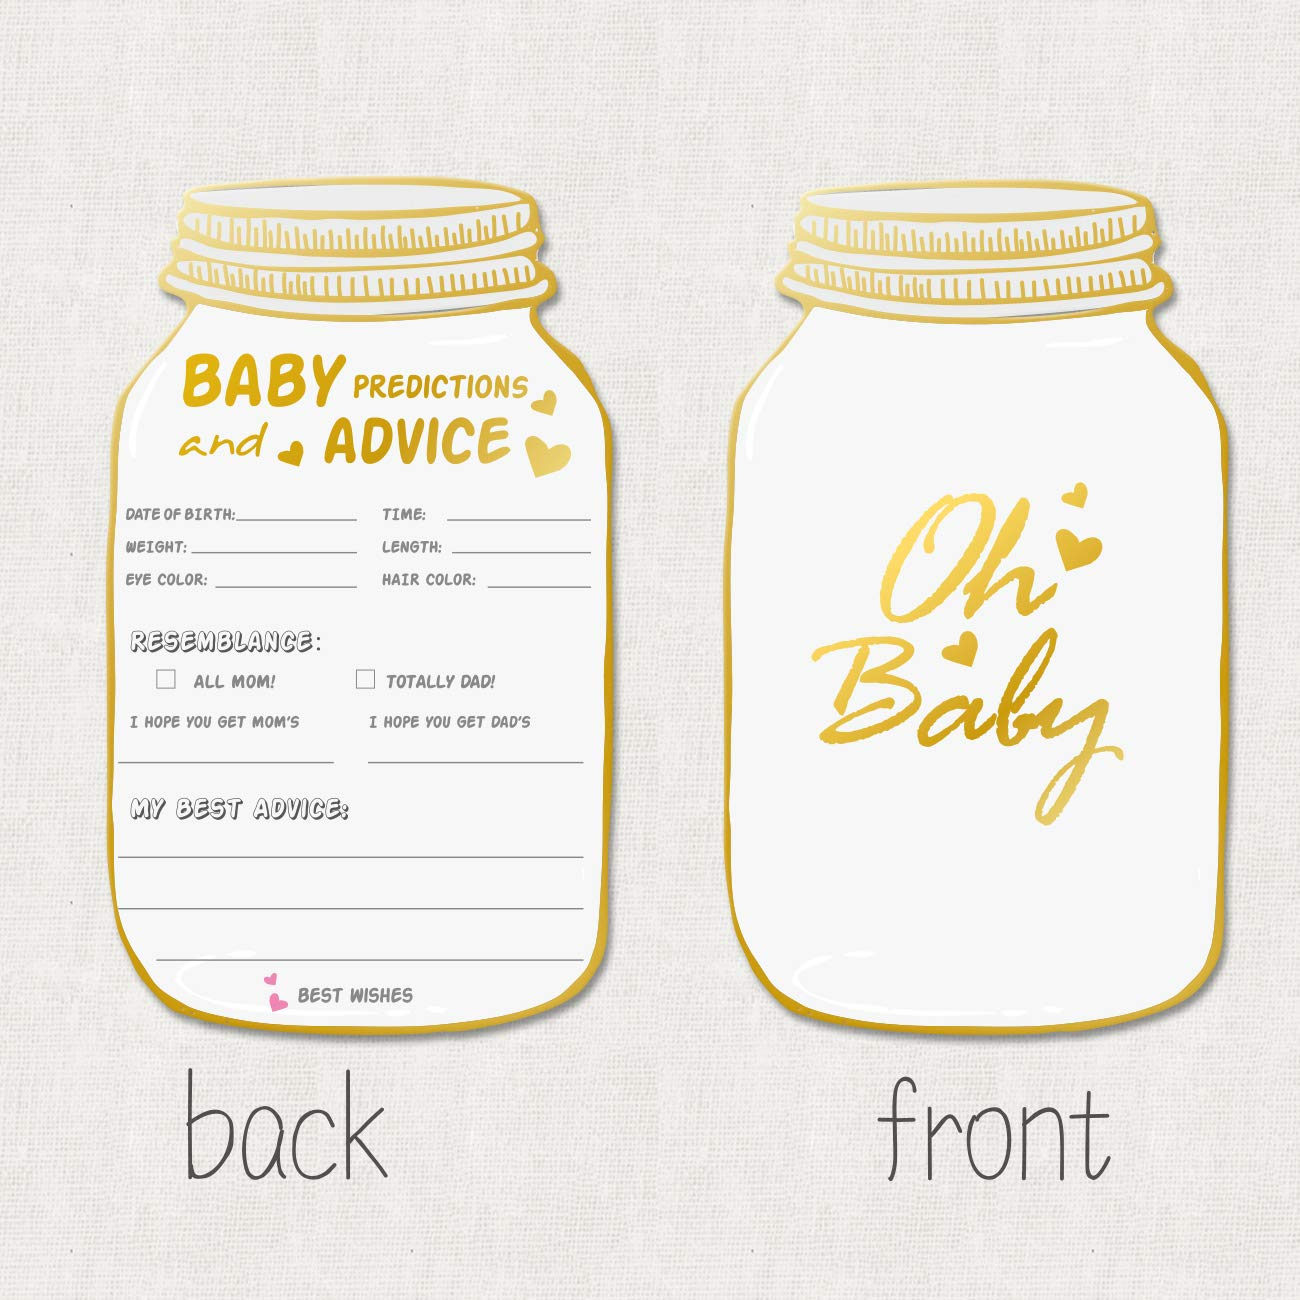 50 Mason Jar Advice and Prediction Cards for Baby Shower Game, Baby Shower Prediction and Advice Cards,Gender Neutral Boy or Girl,Fun Baby Shower Games Favors,New Parent Message Advice Book - 4x7inch by yuzi-n (Image #2)